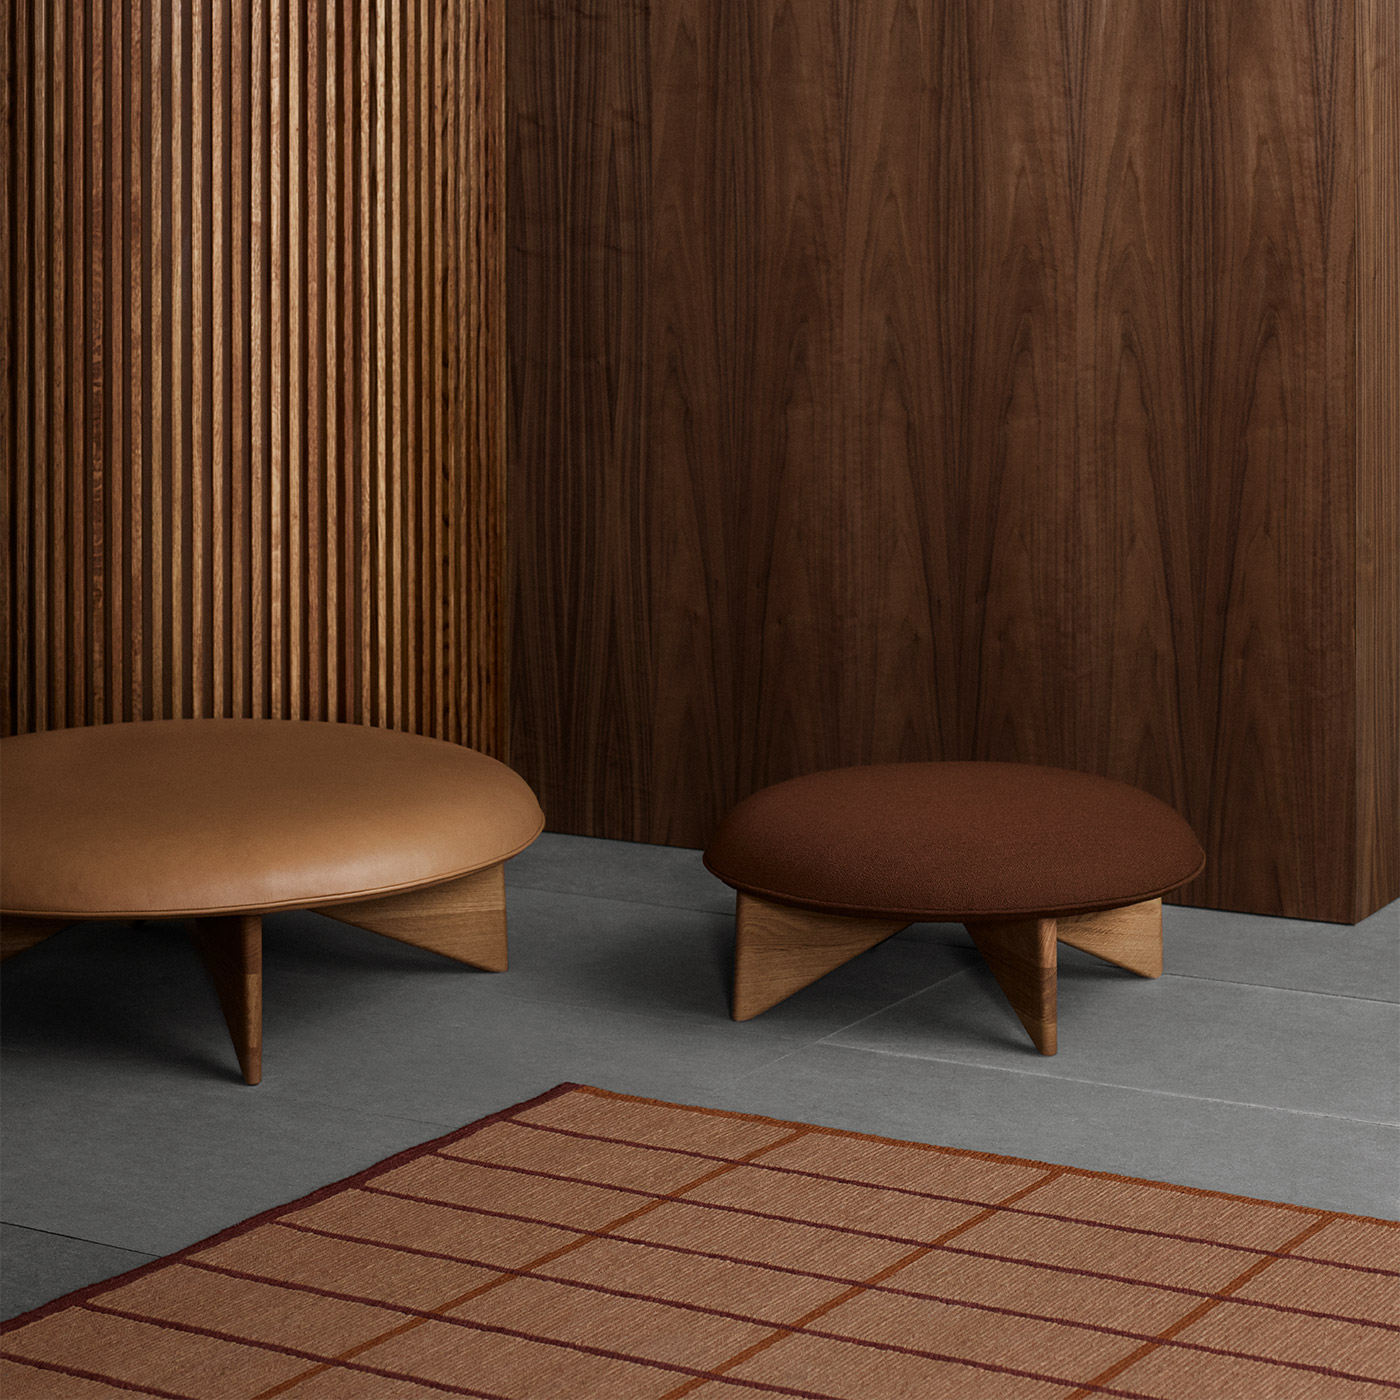 tan geometric wool rug with modern Scandinavian dark wooden stools